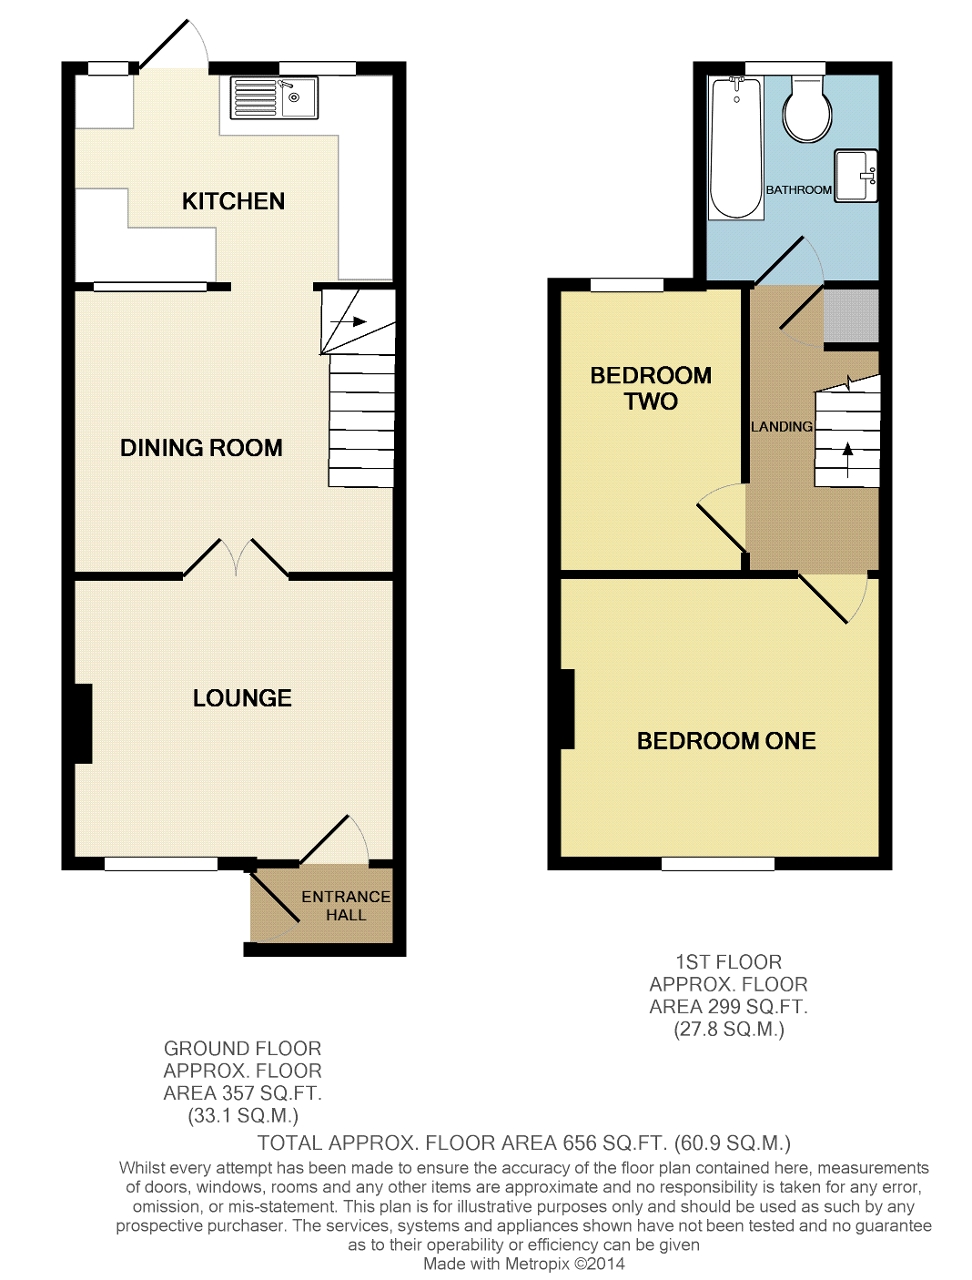 Floorplan of Chatham Place, Seaford, East Sussex, BN25 1EX